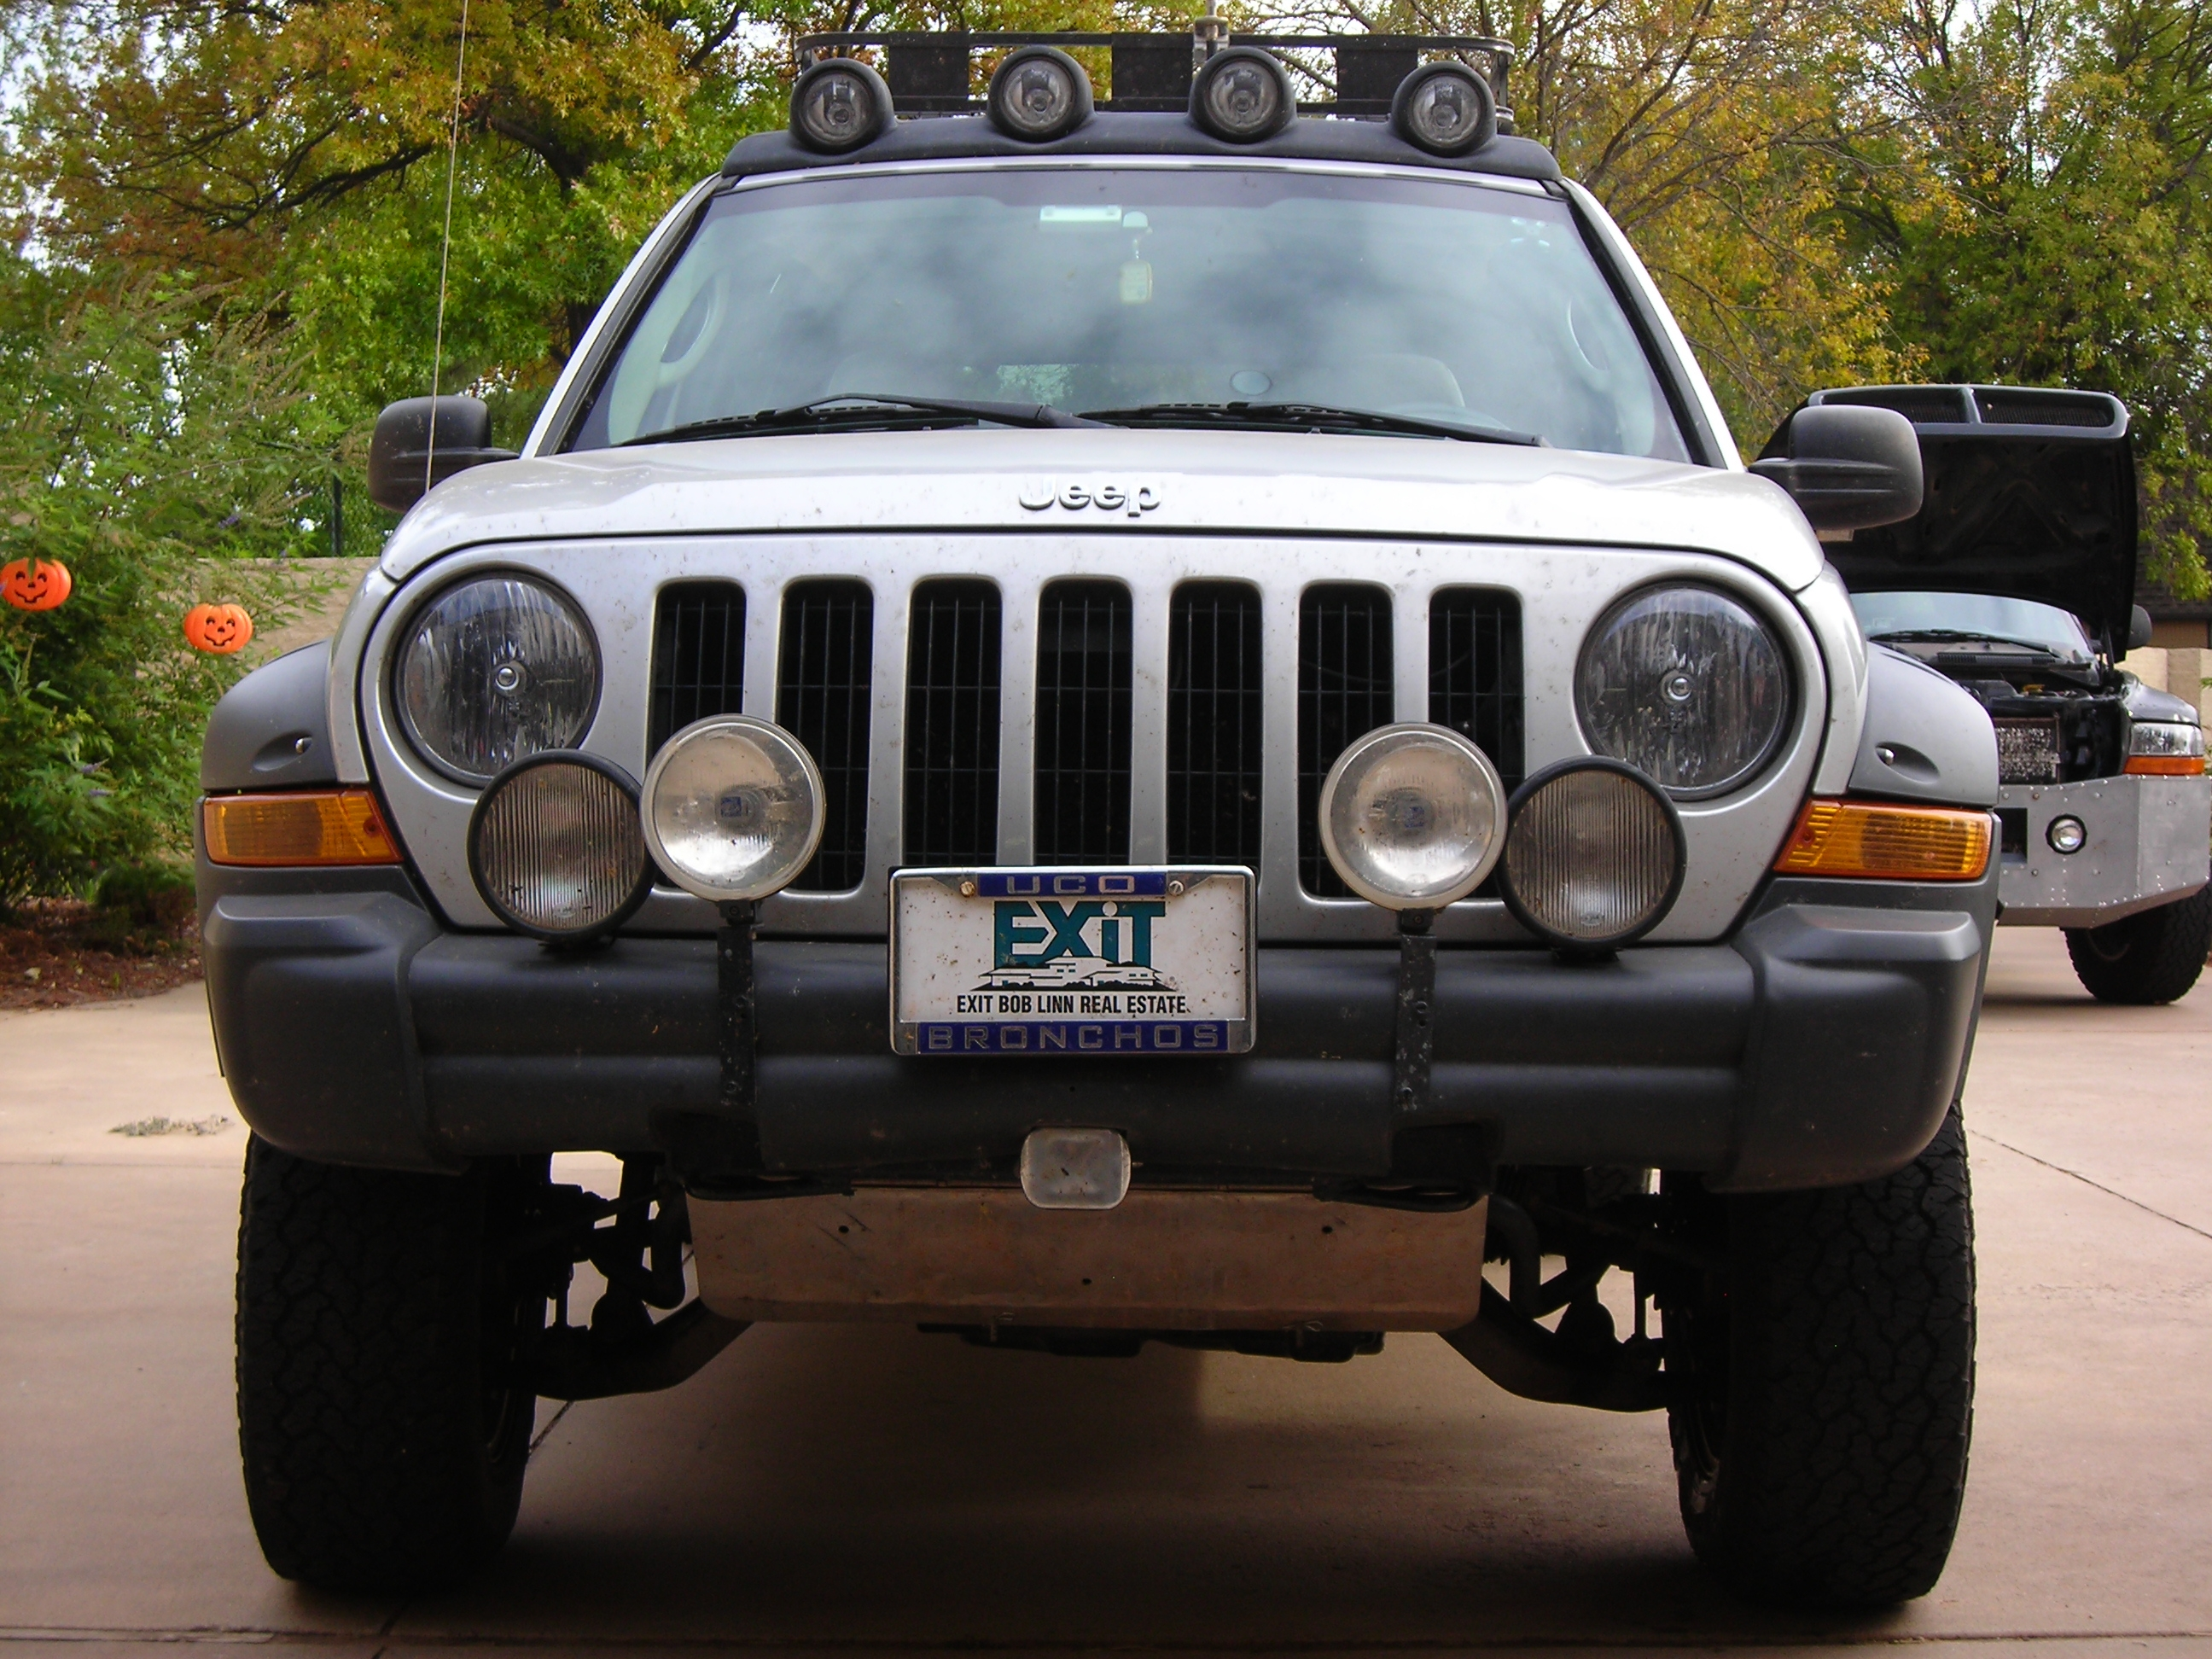 DerkJL's 2005 Jeep Liberty